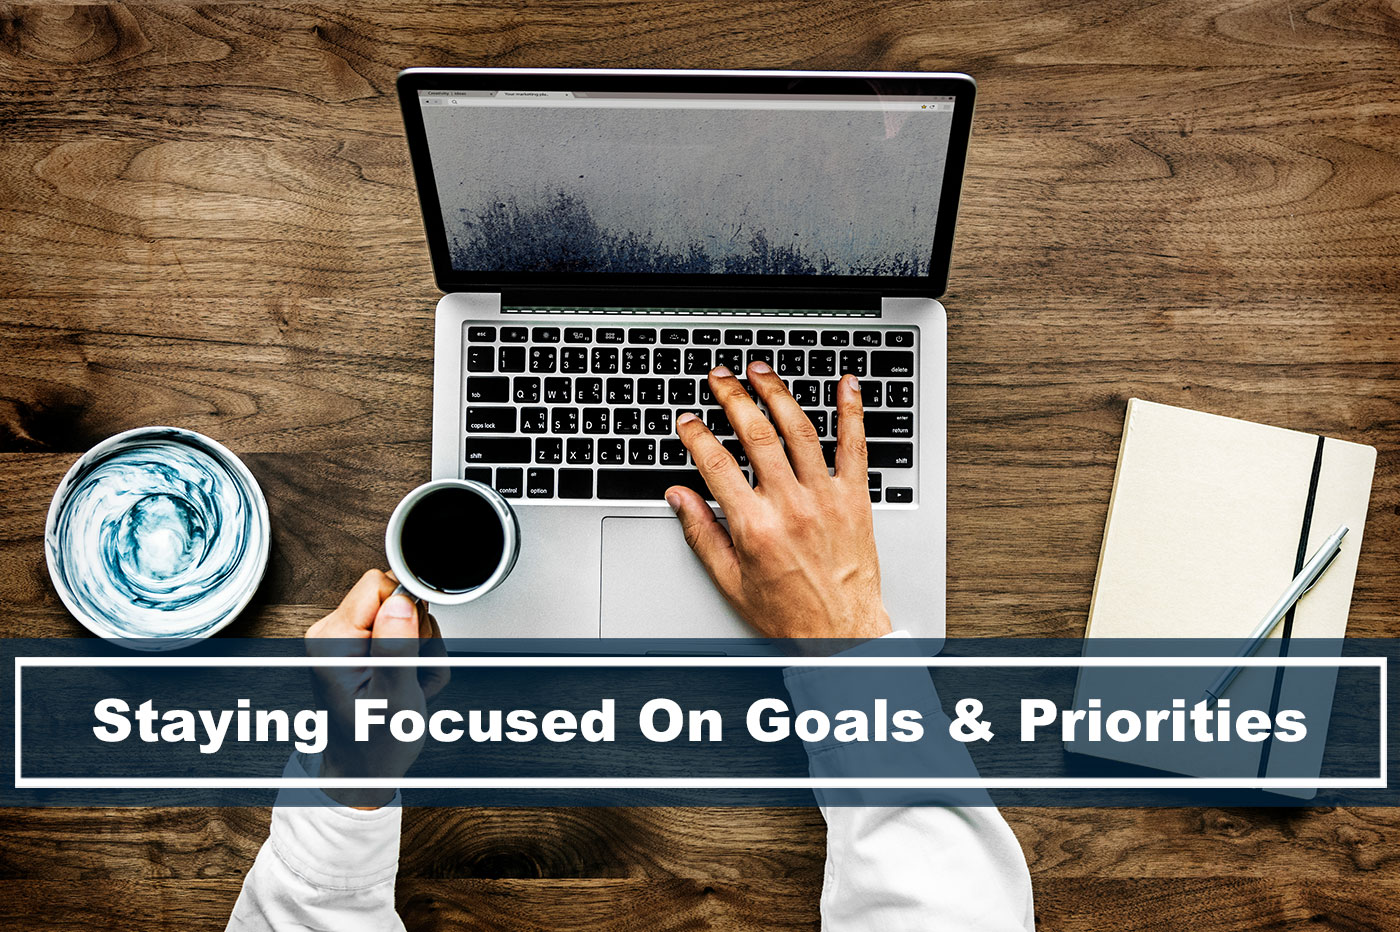 tips to staying focused on goals and priorities